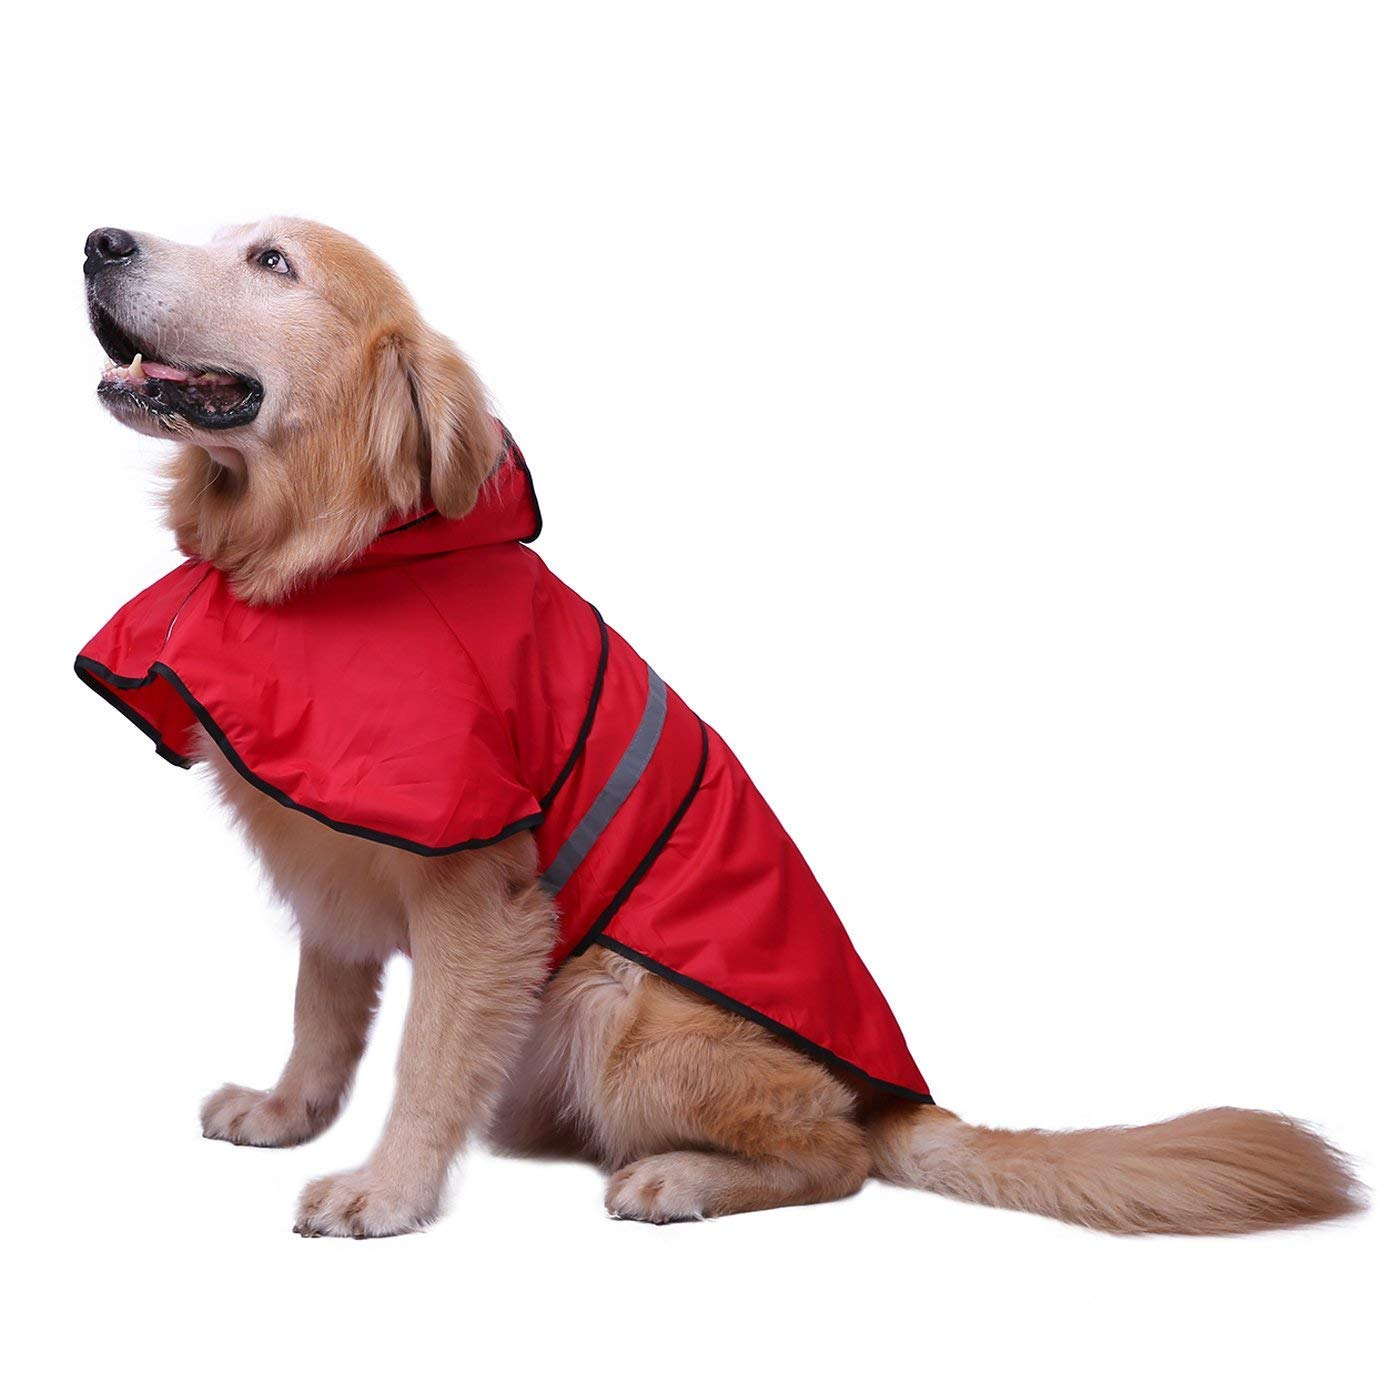 DOUGE COUTURE Dog Raincoat Hooded Slicker Poncho for Dogs and Puppies - Red - 32 Inch (B07TLN57MZ) Amazon Price History, Amazon Price Tracker